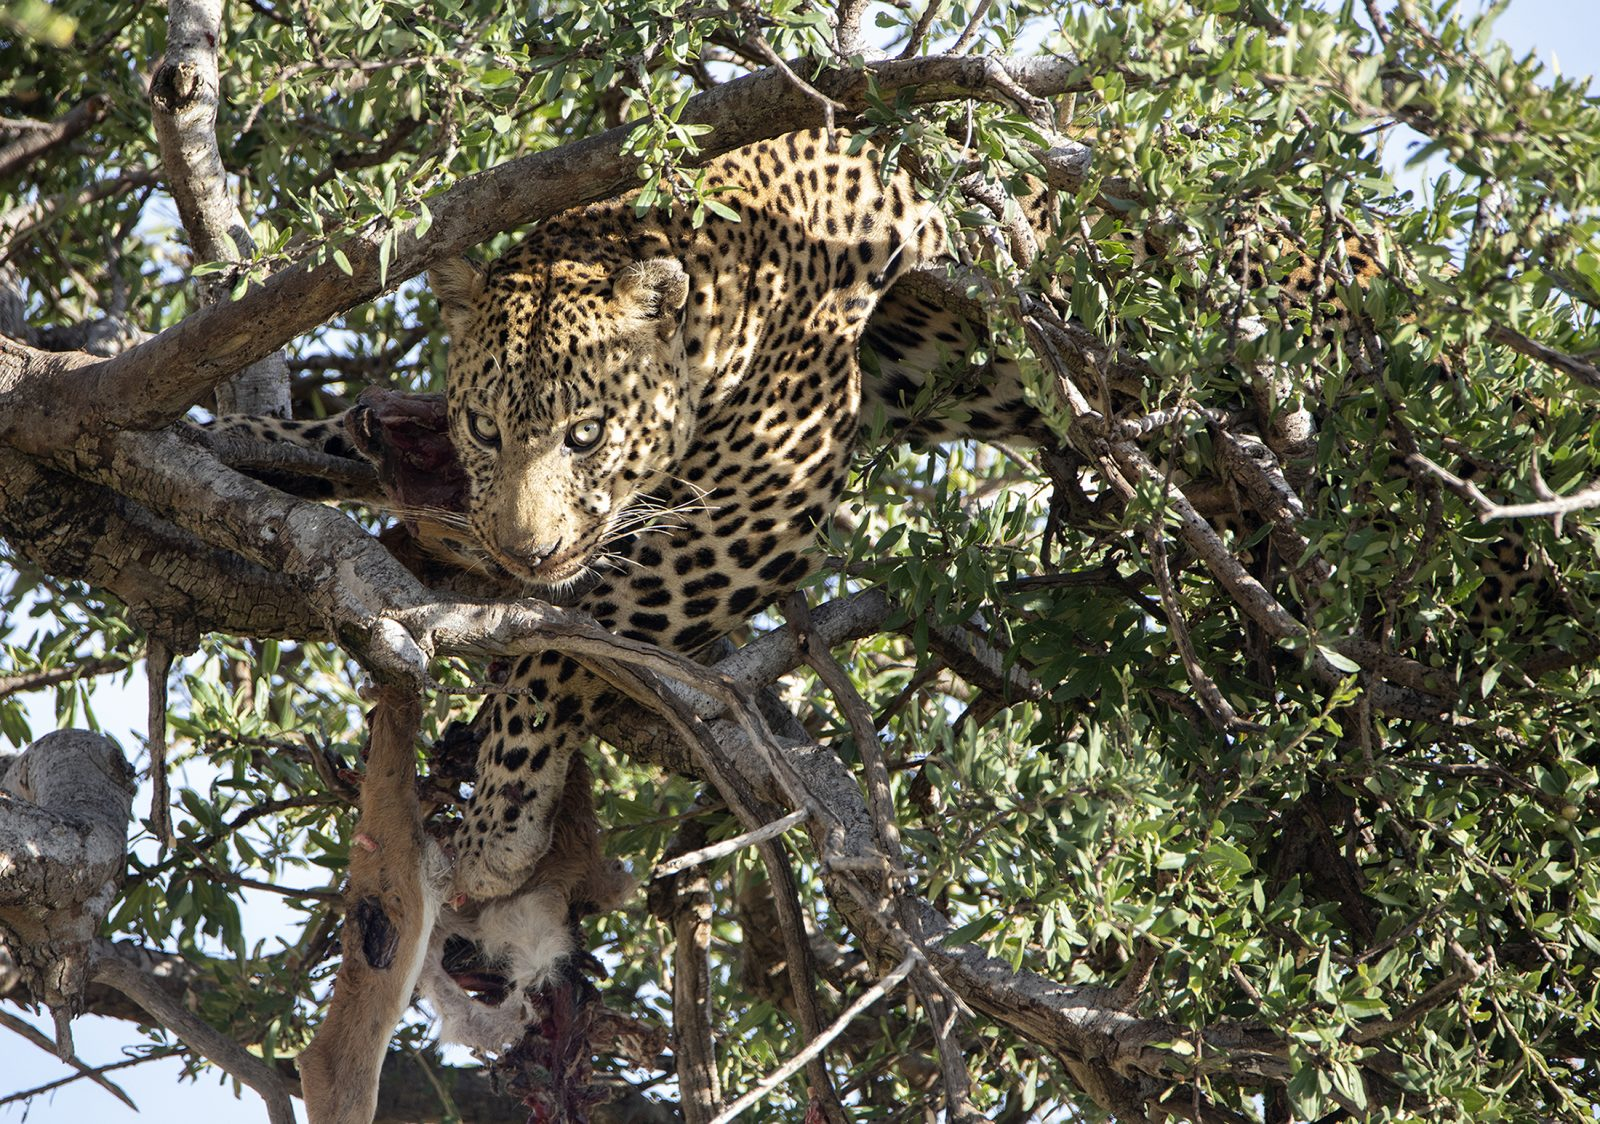 Looming Leopard